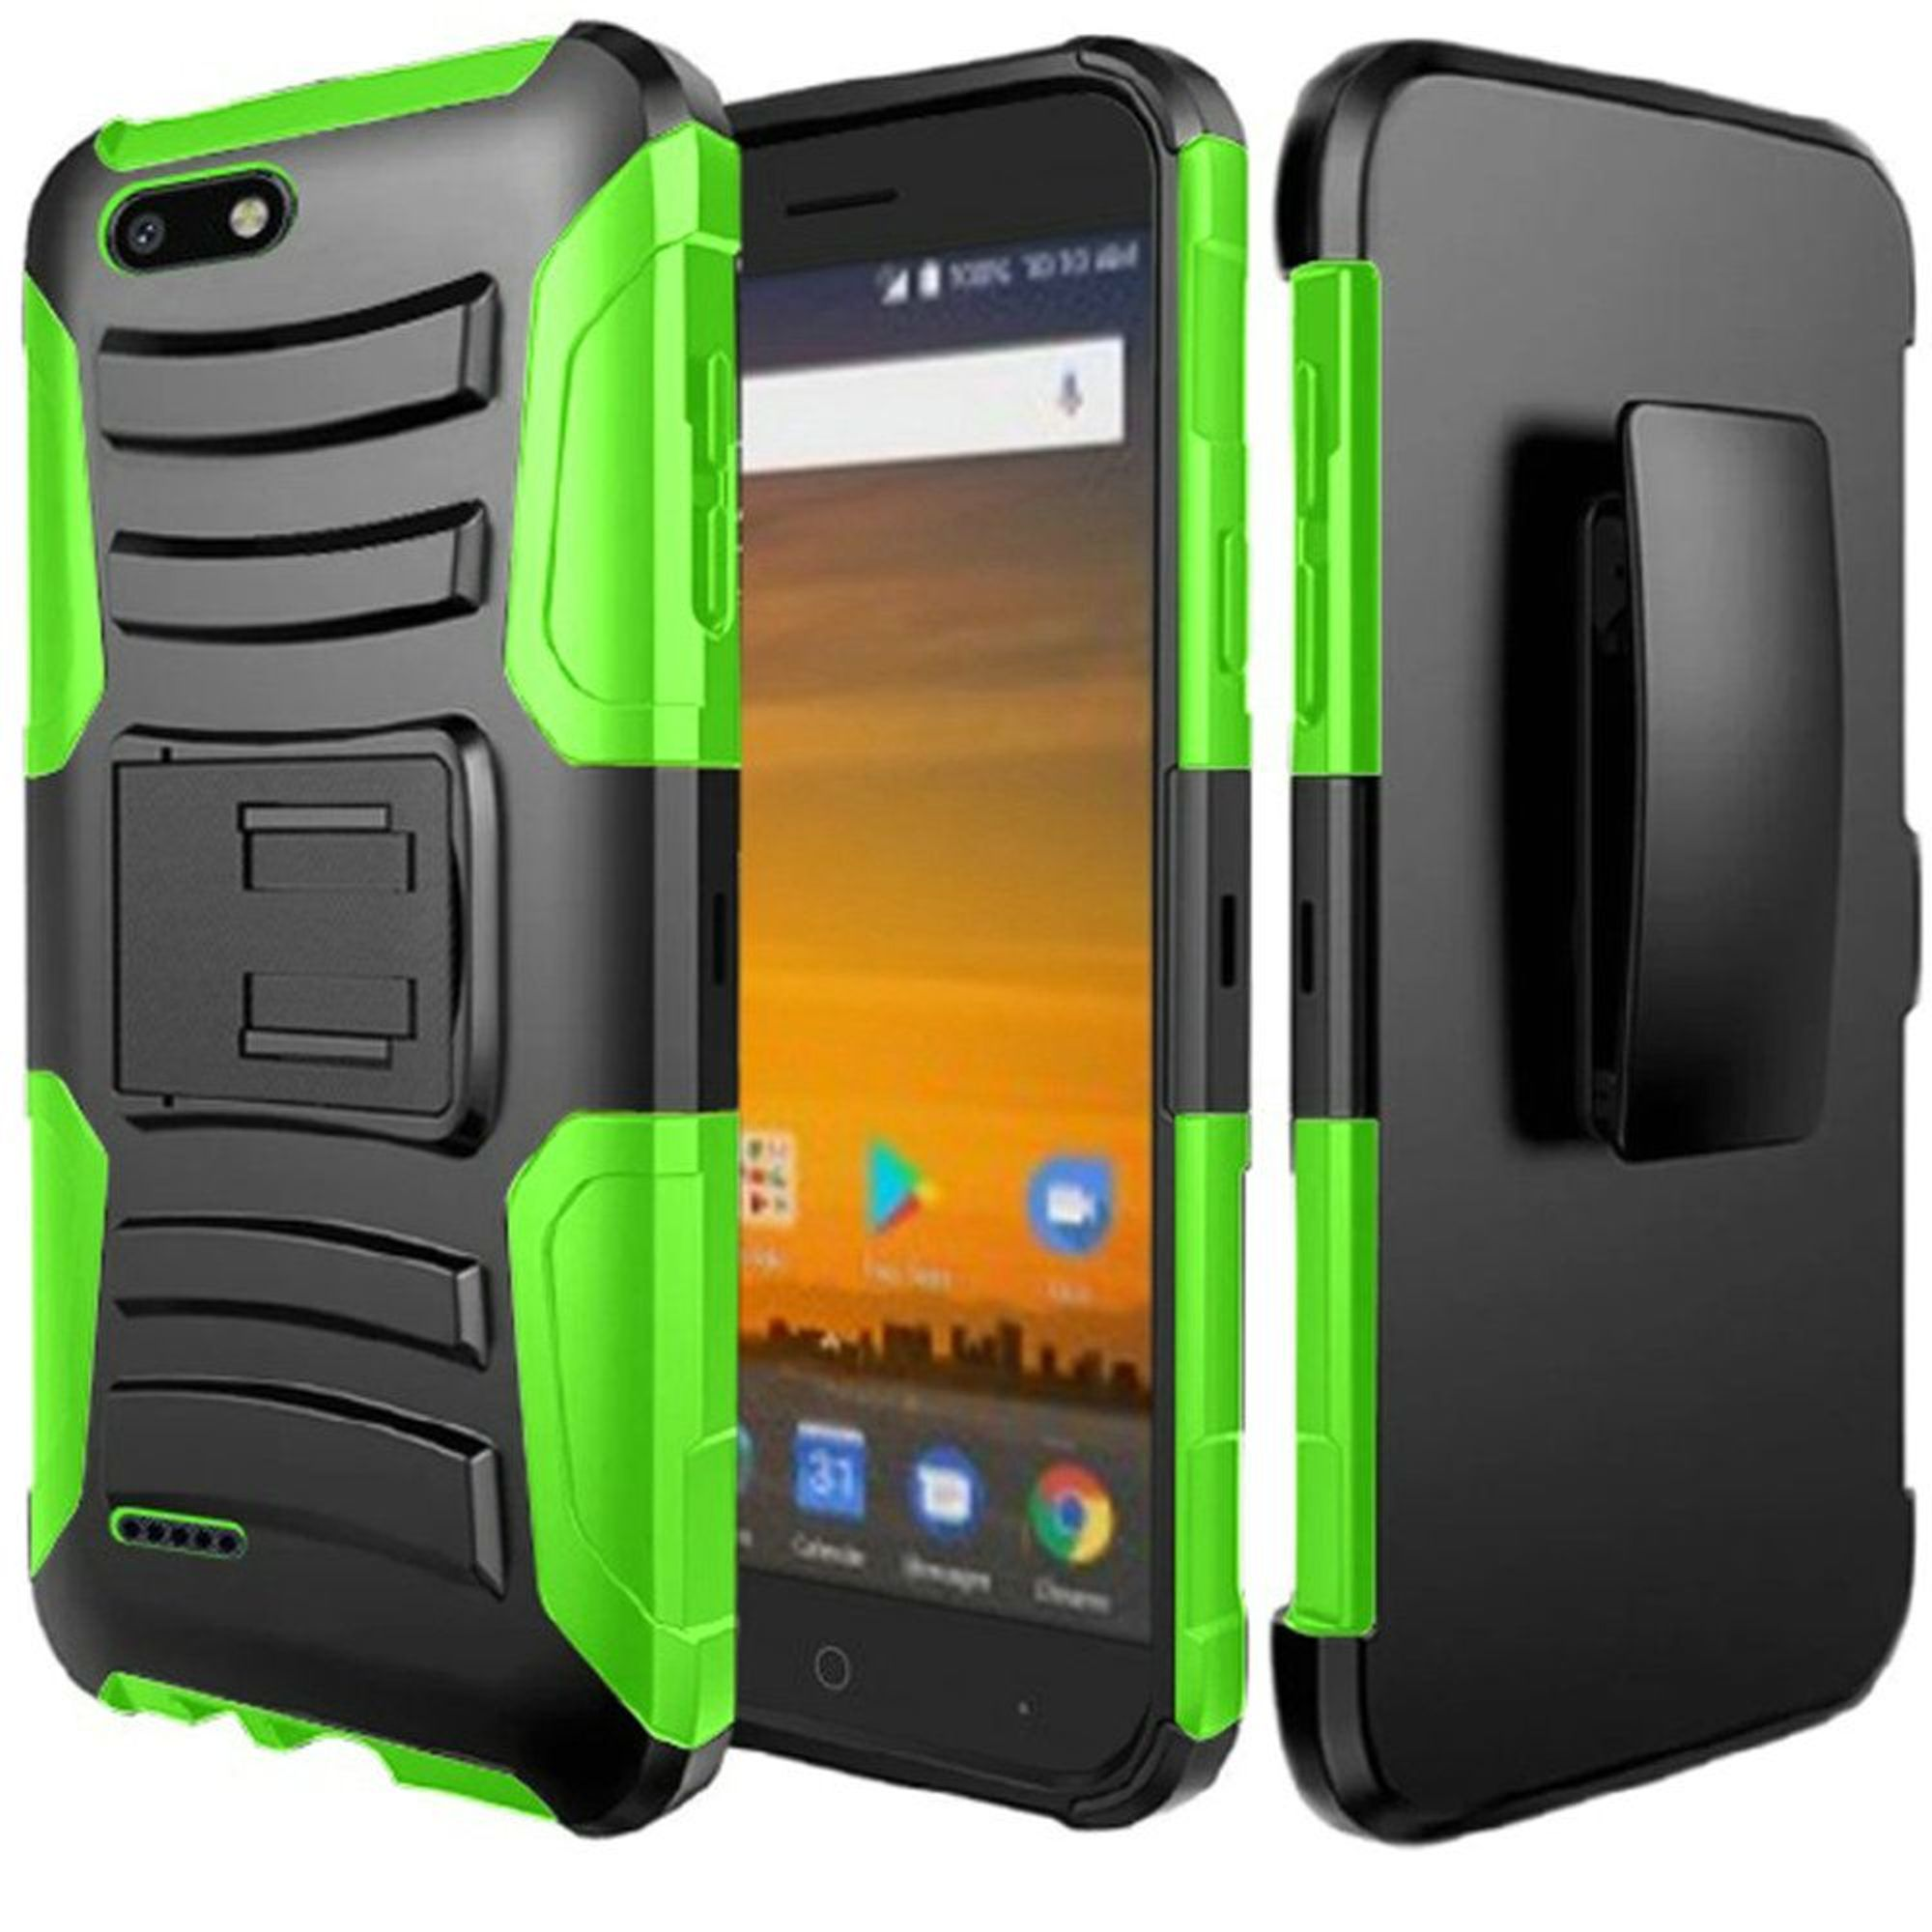 ZTE Blade Force Case, by HR Wireless Dual Layer [Shock Absorbing] Hybrid Stand Rubber Coated Hard Plastic/Soft Silicone Case Cover Holster For ZTE Blade Force, Black/Neon Green